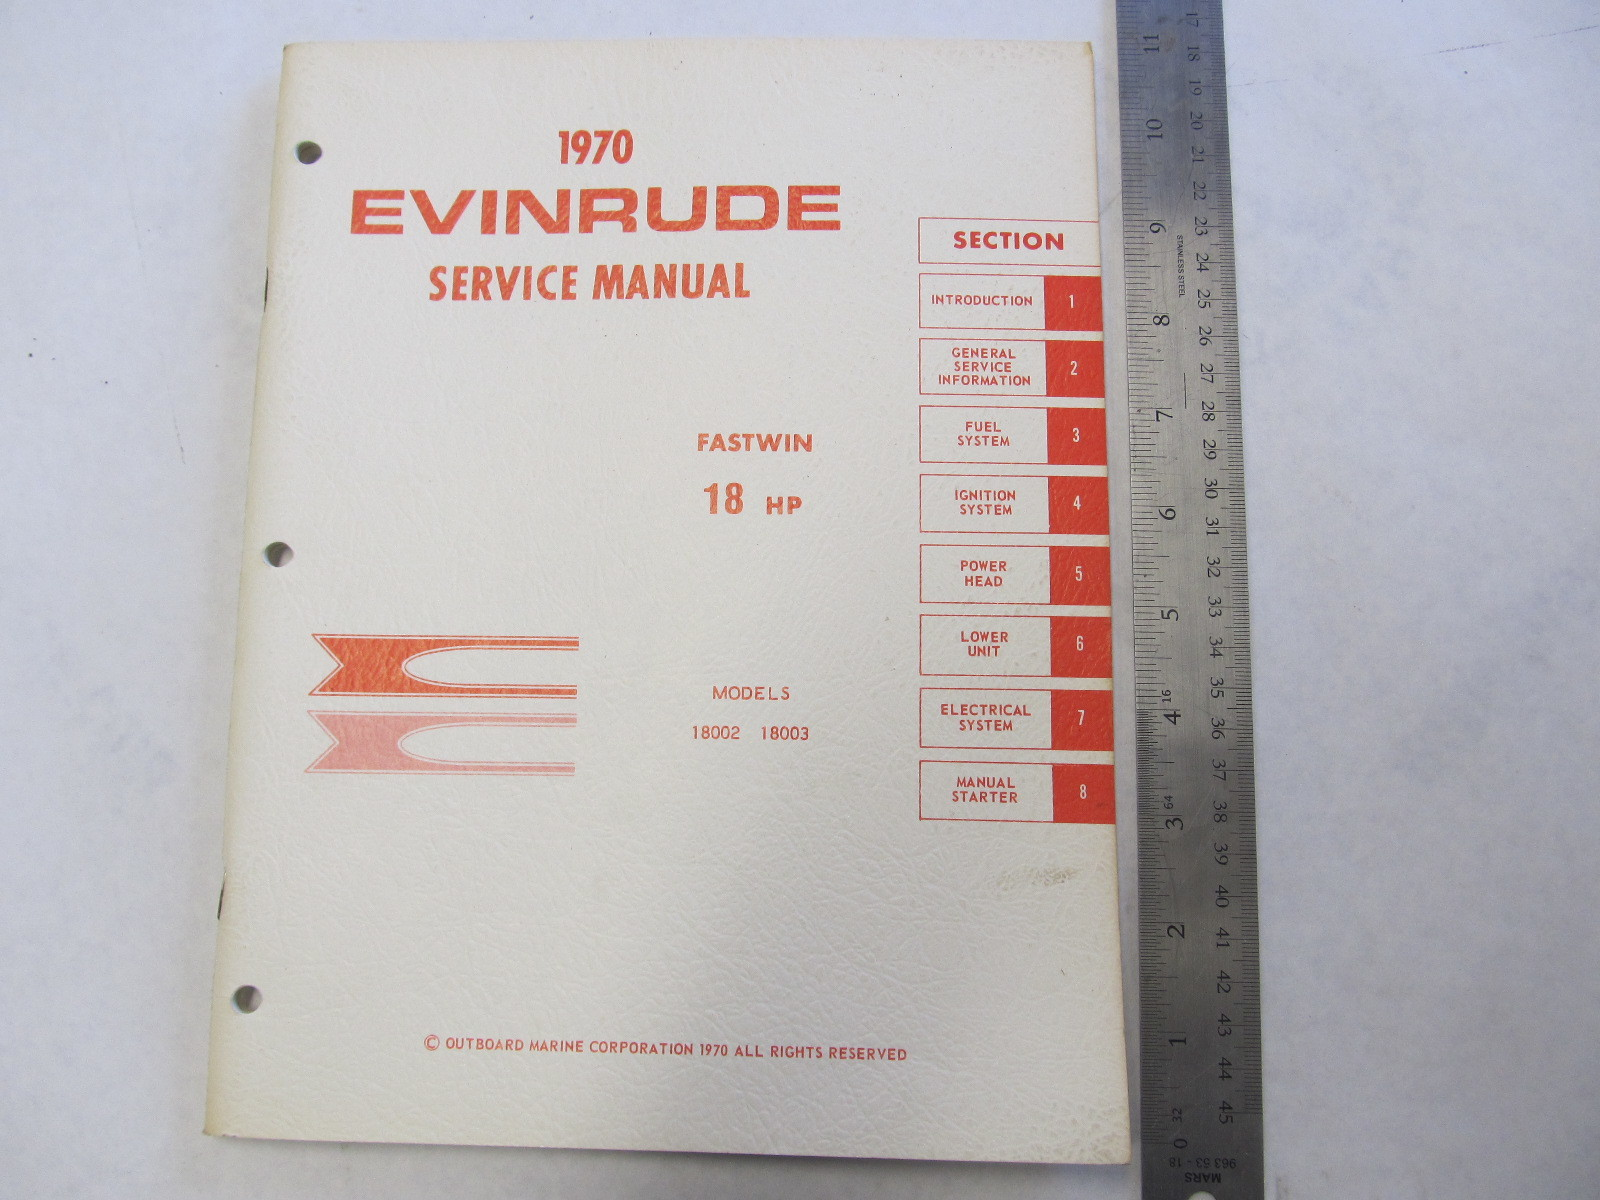 1970 Evinrude Outboard Service Manual 18 HP Fastwin 18002 18003